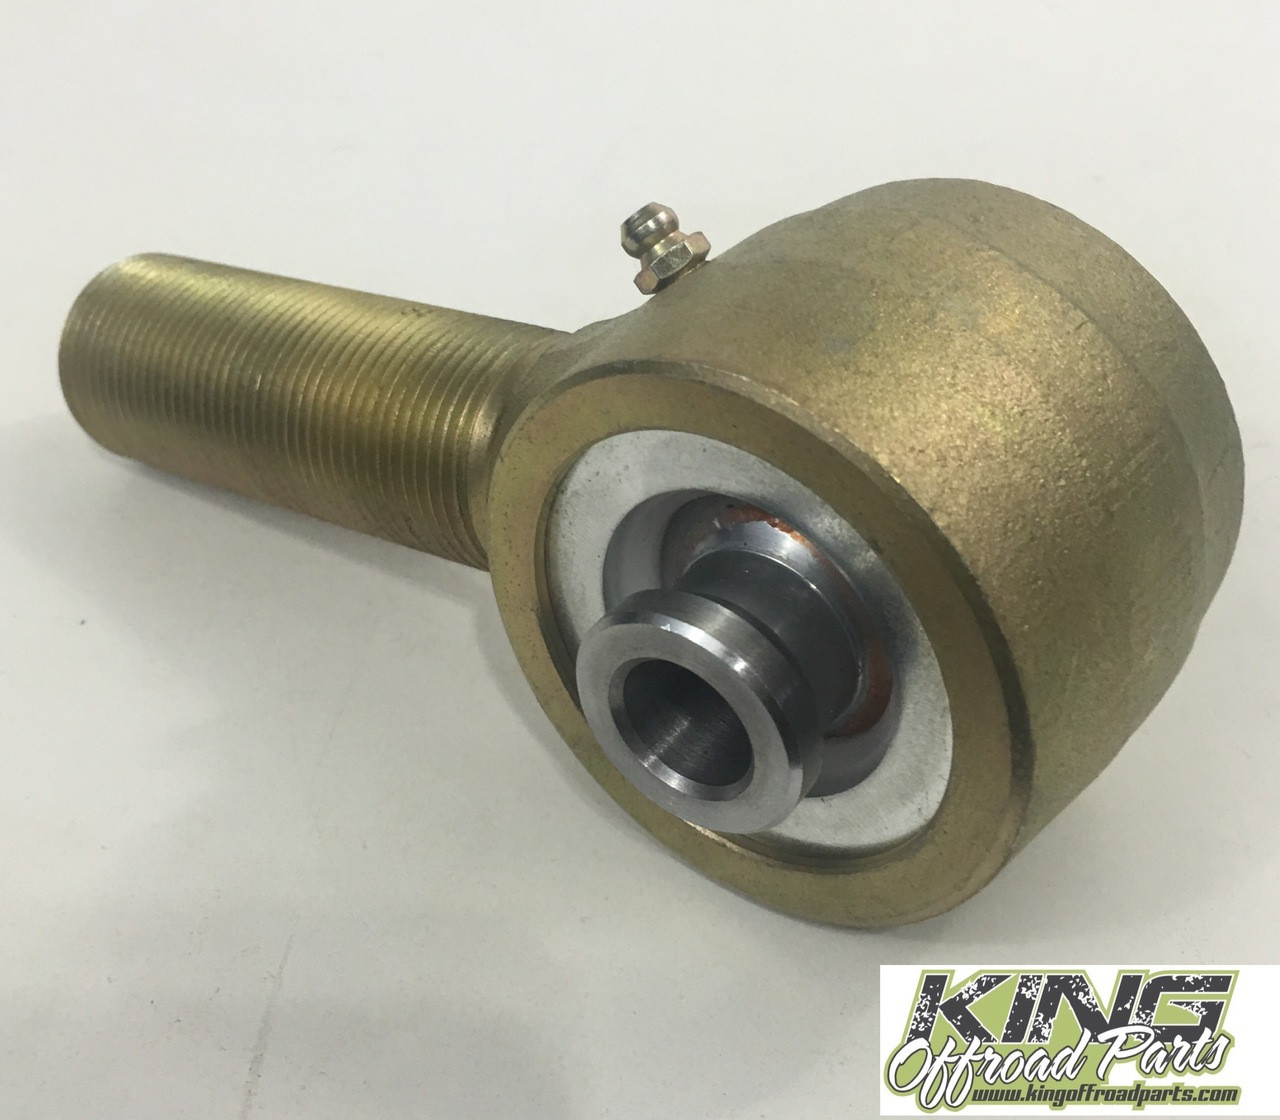 125 Flex Joint With Delrin Bushings 9 16 Bolt LEFT HAND THREAD